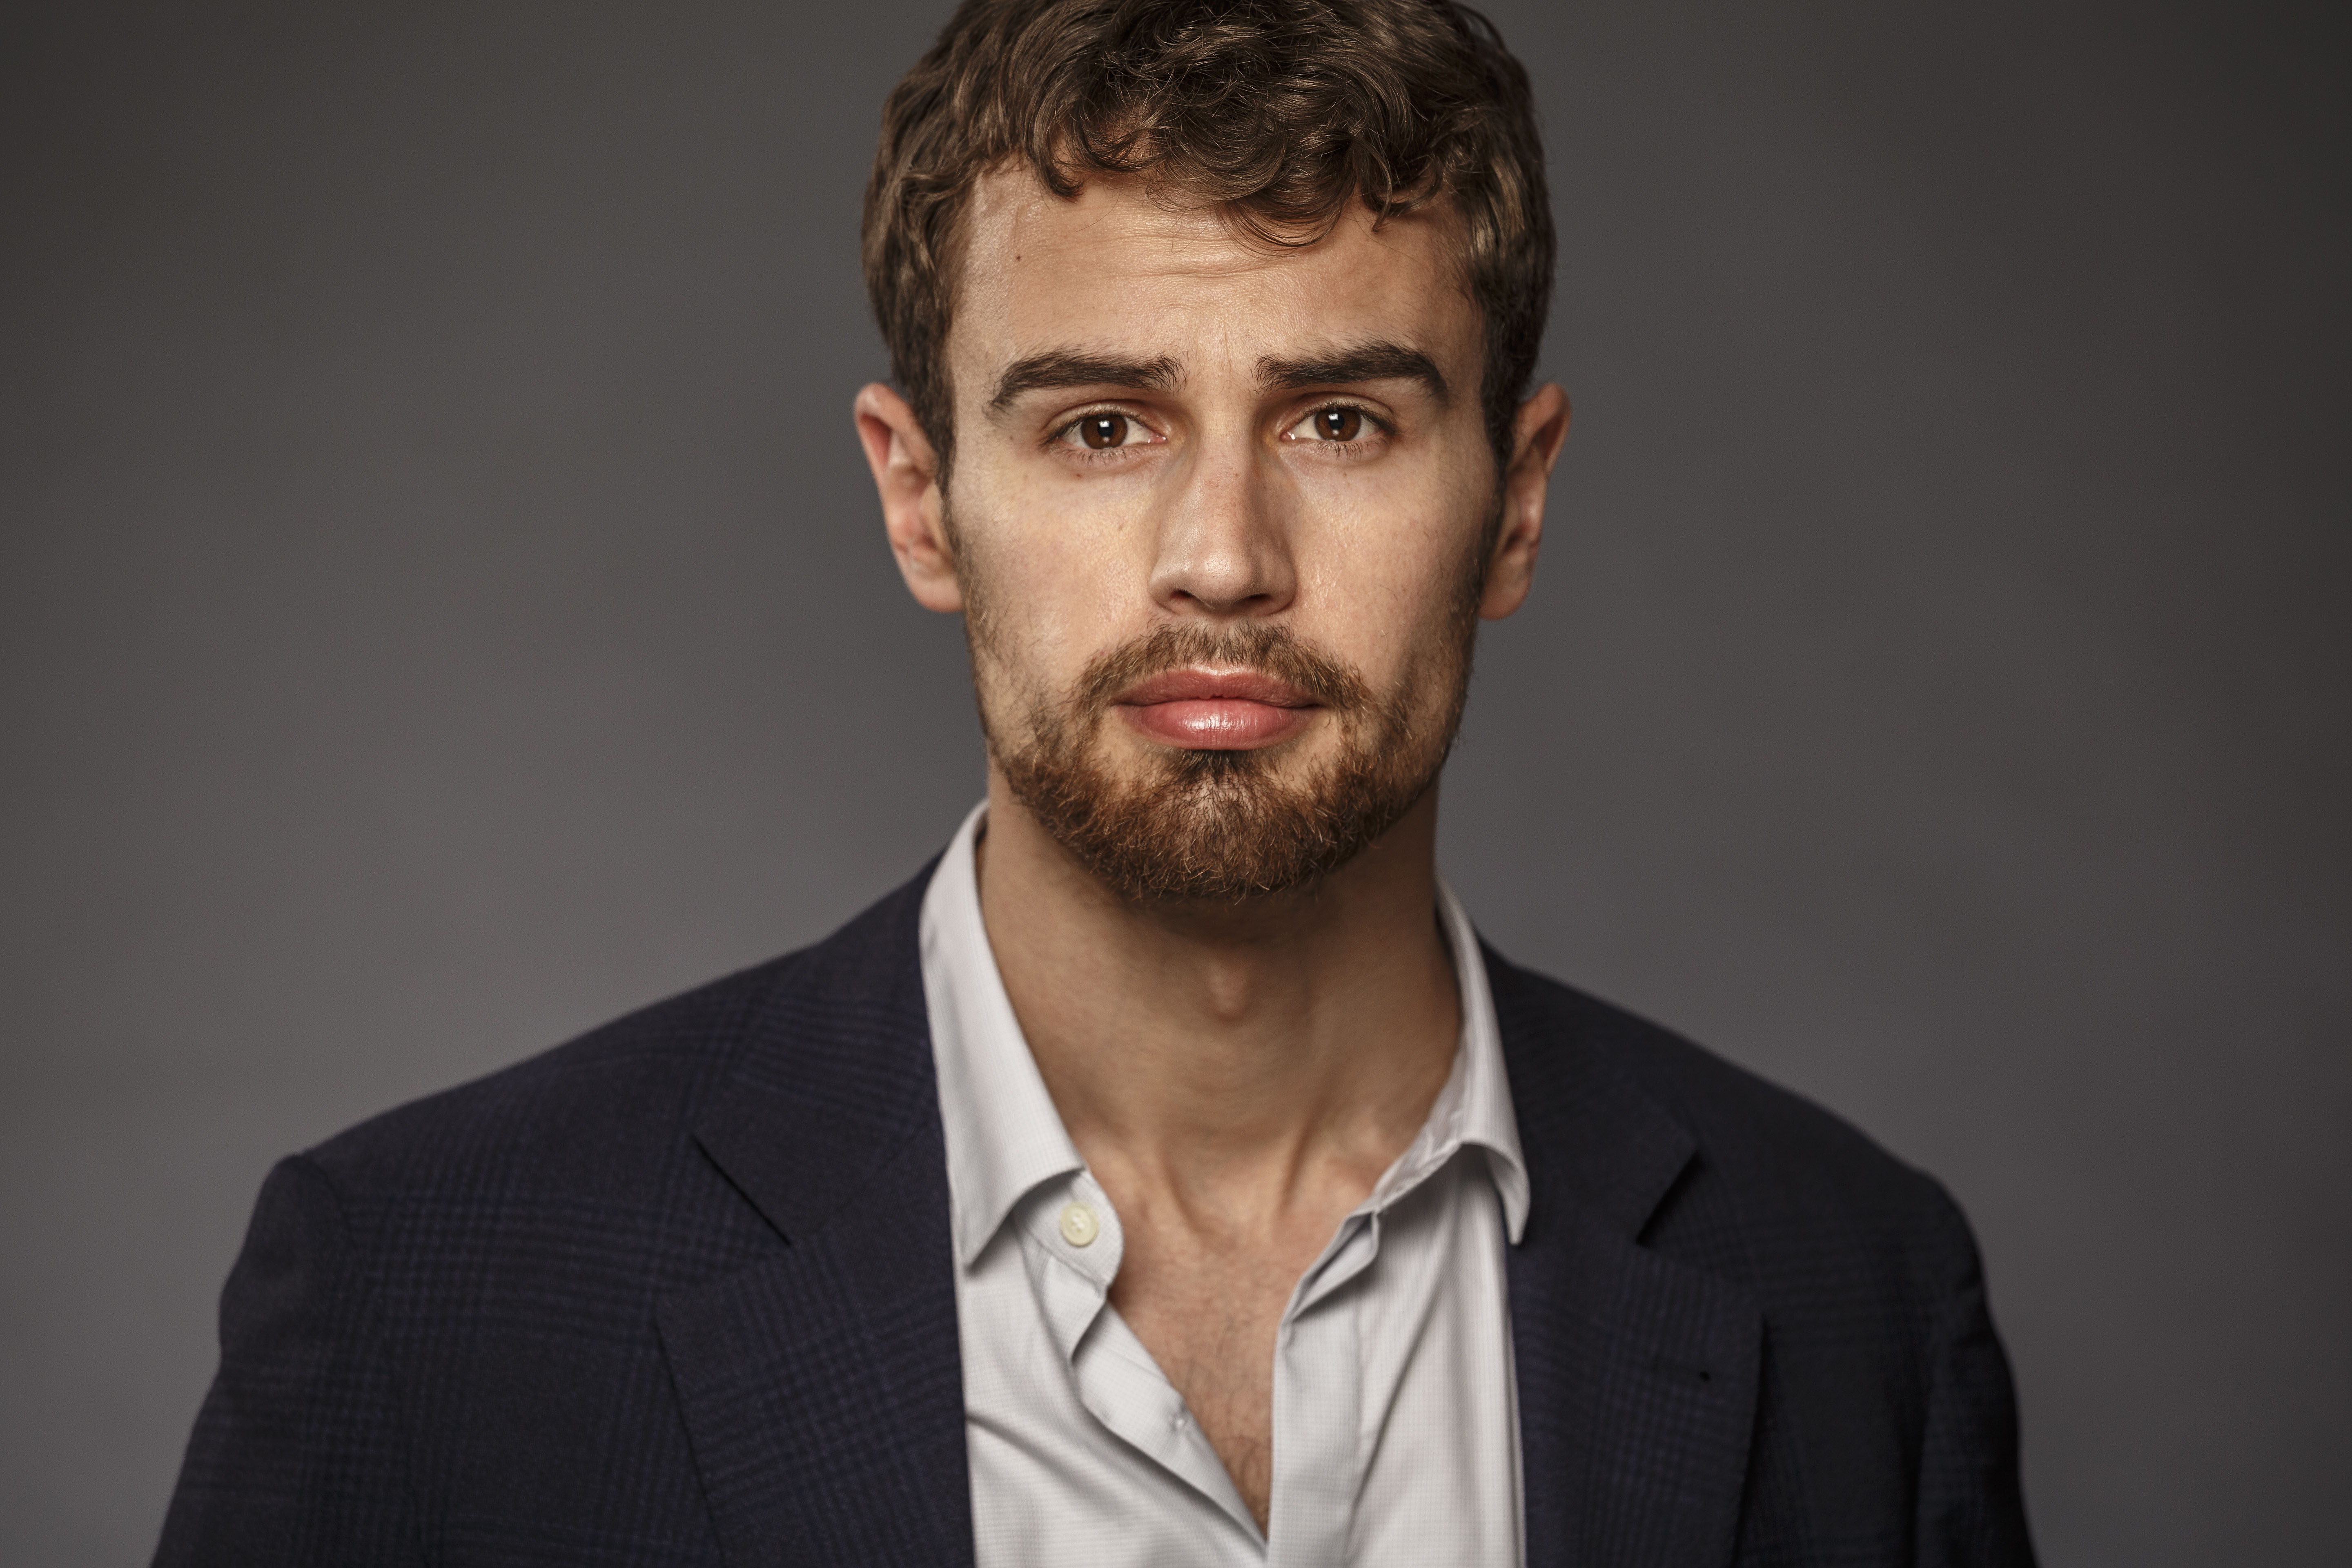 6 Hd Theo James Wallpapers